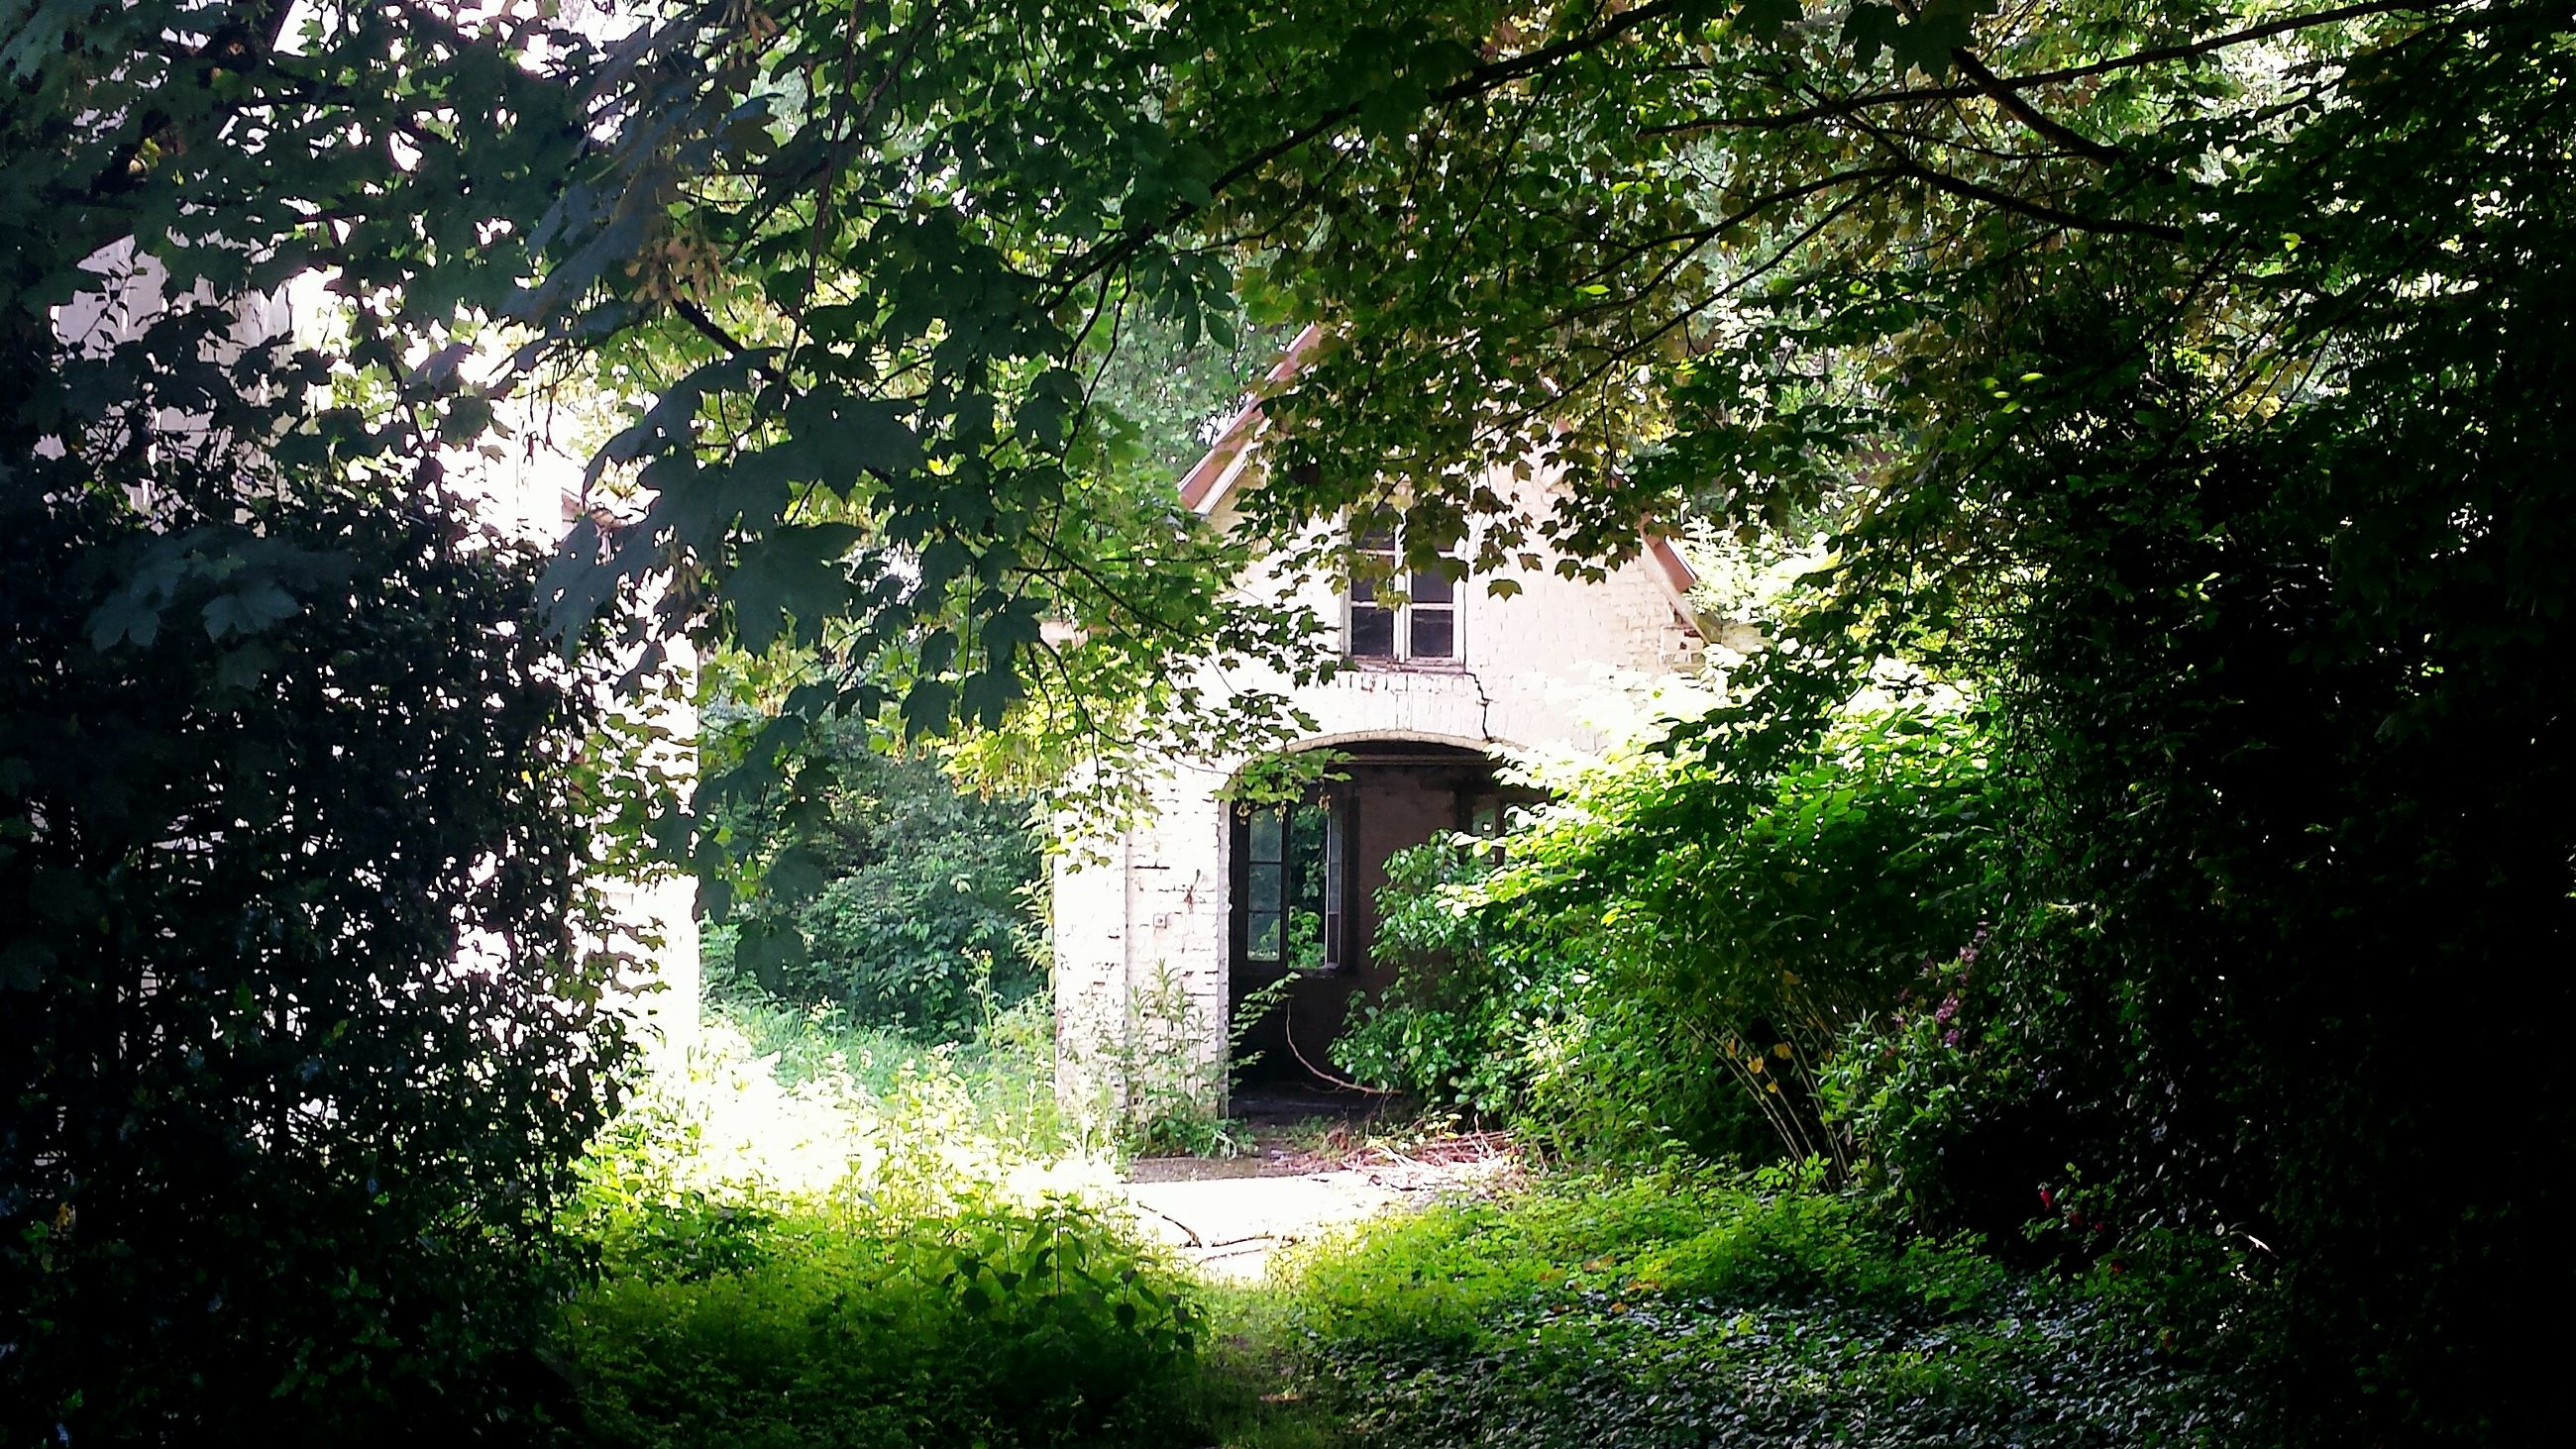 tree, building exterior, architecture, built structure, growth, branch, green color, house, plant, tree trunk, nature, low angle view, day, outdoors, sunlight, no people, leaf, residential structure, building, tranquility